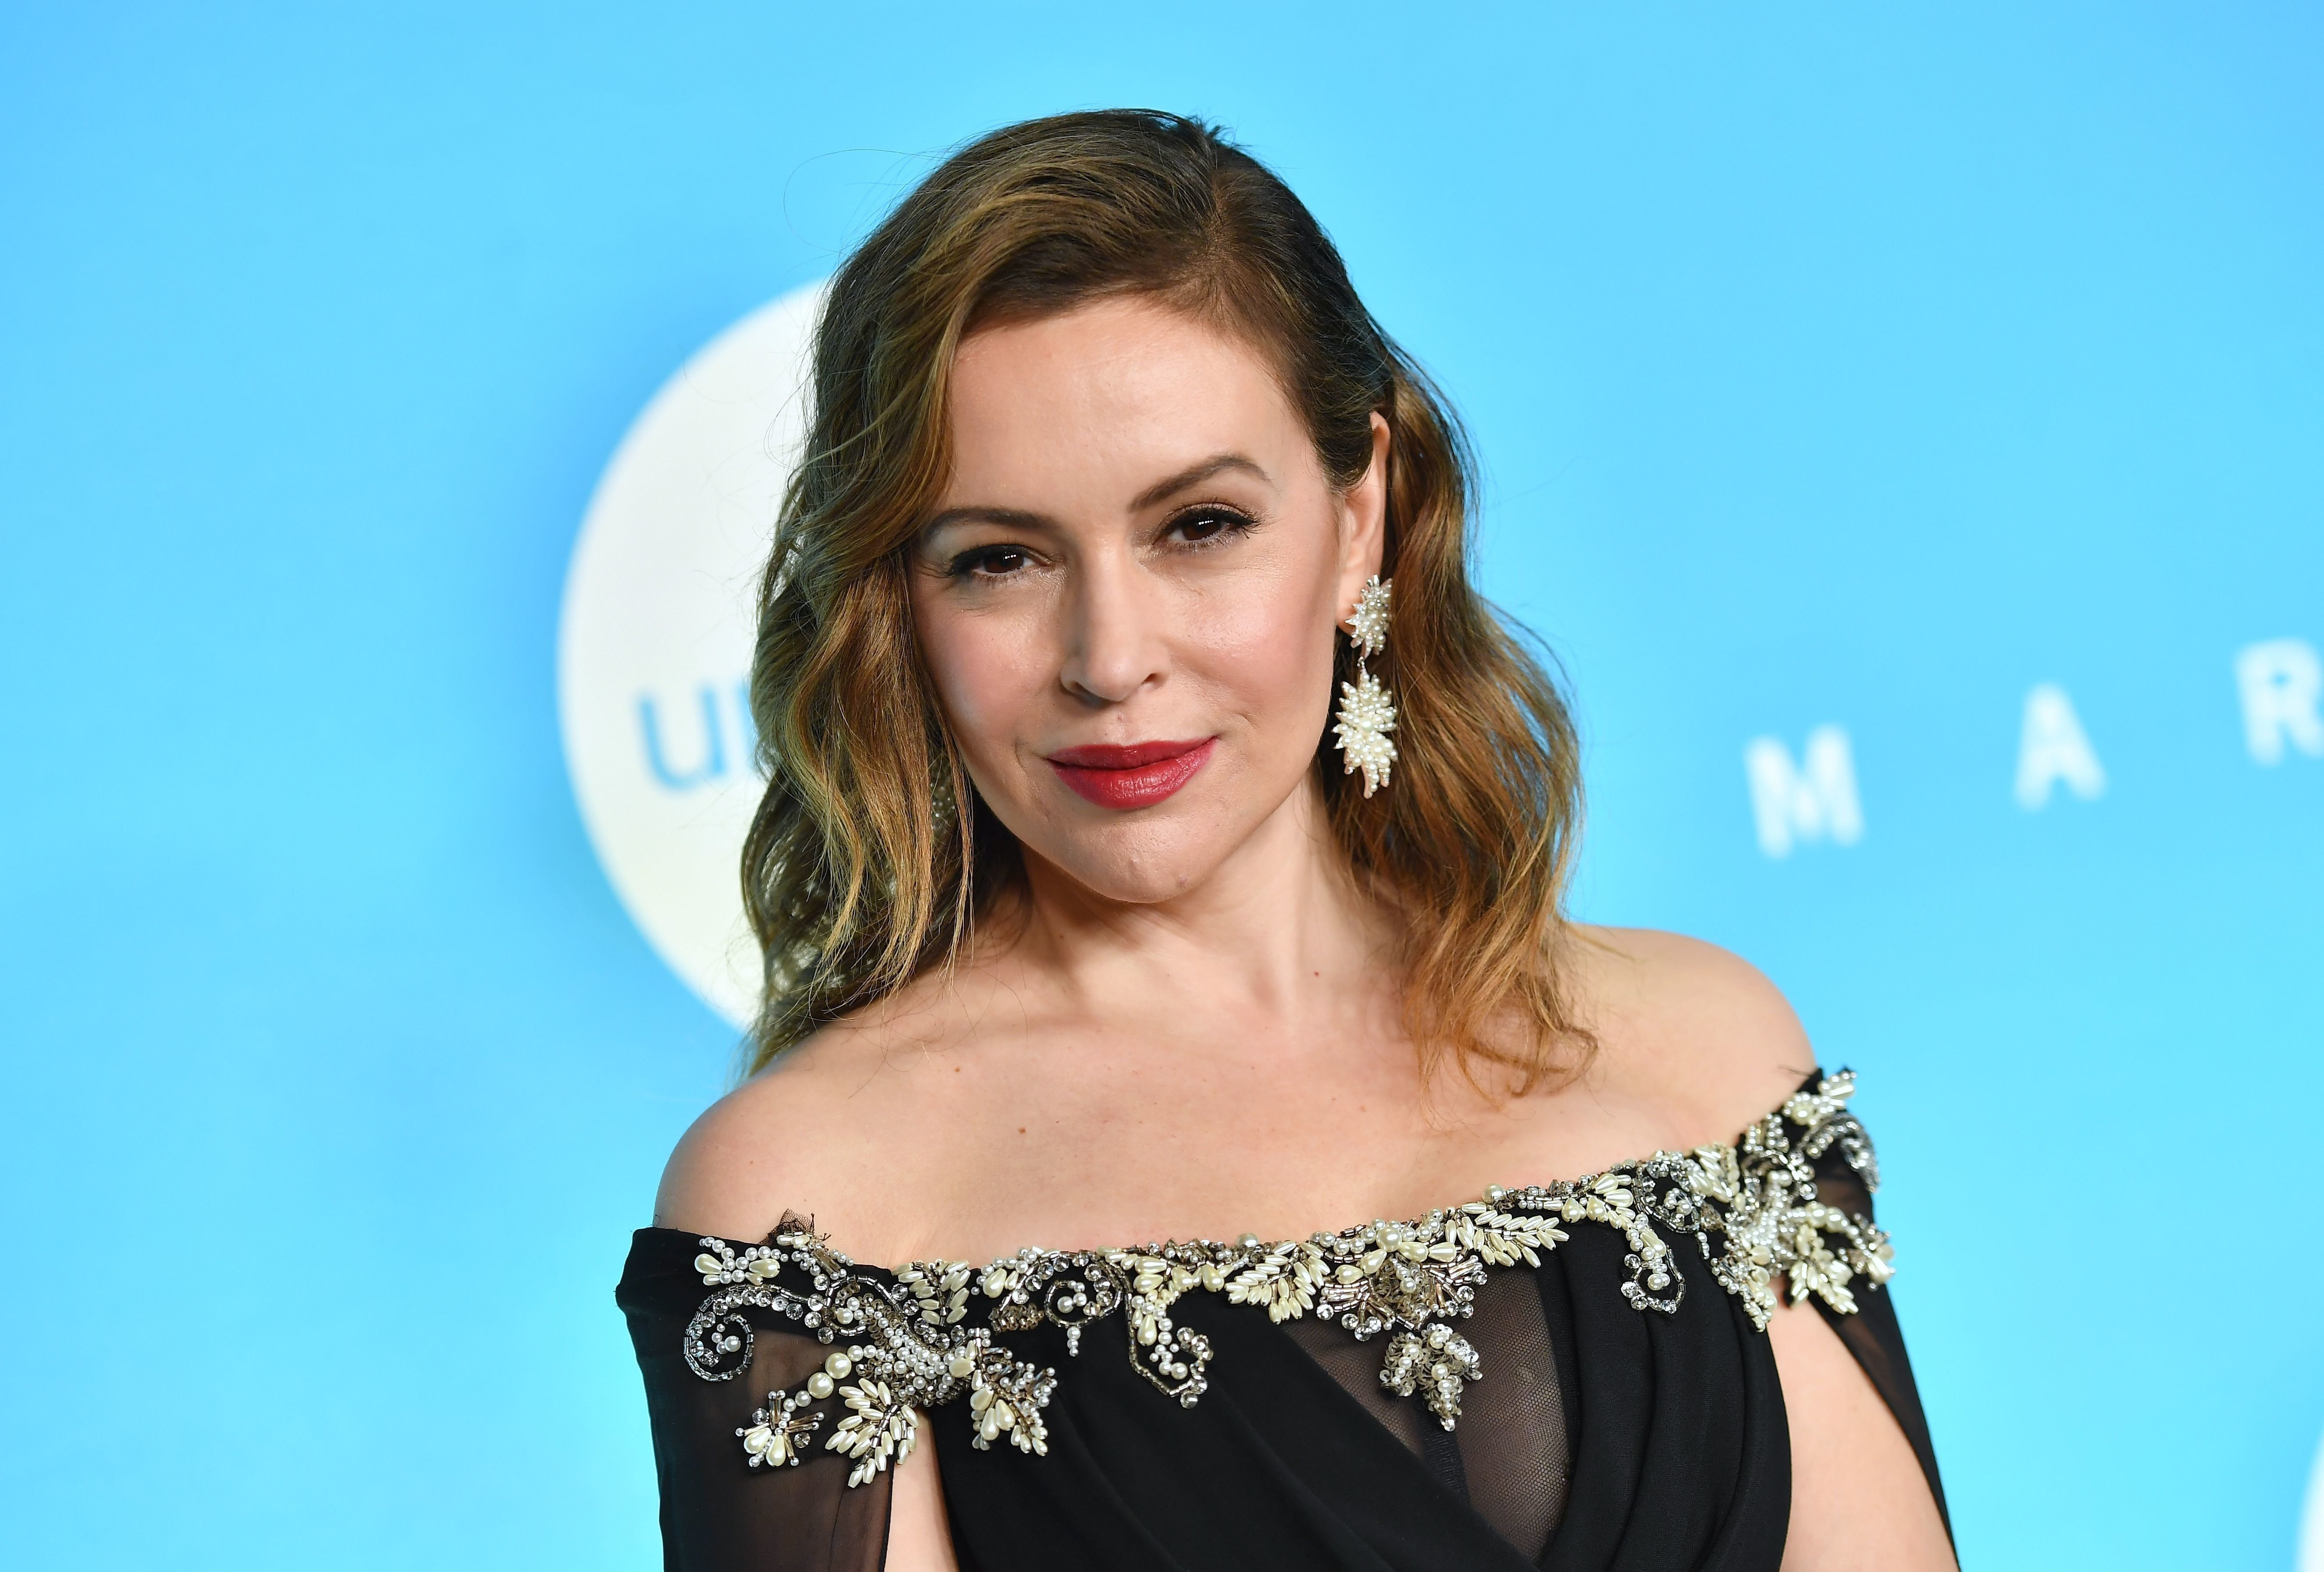 Can alyssa milano actress think, that